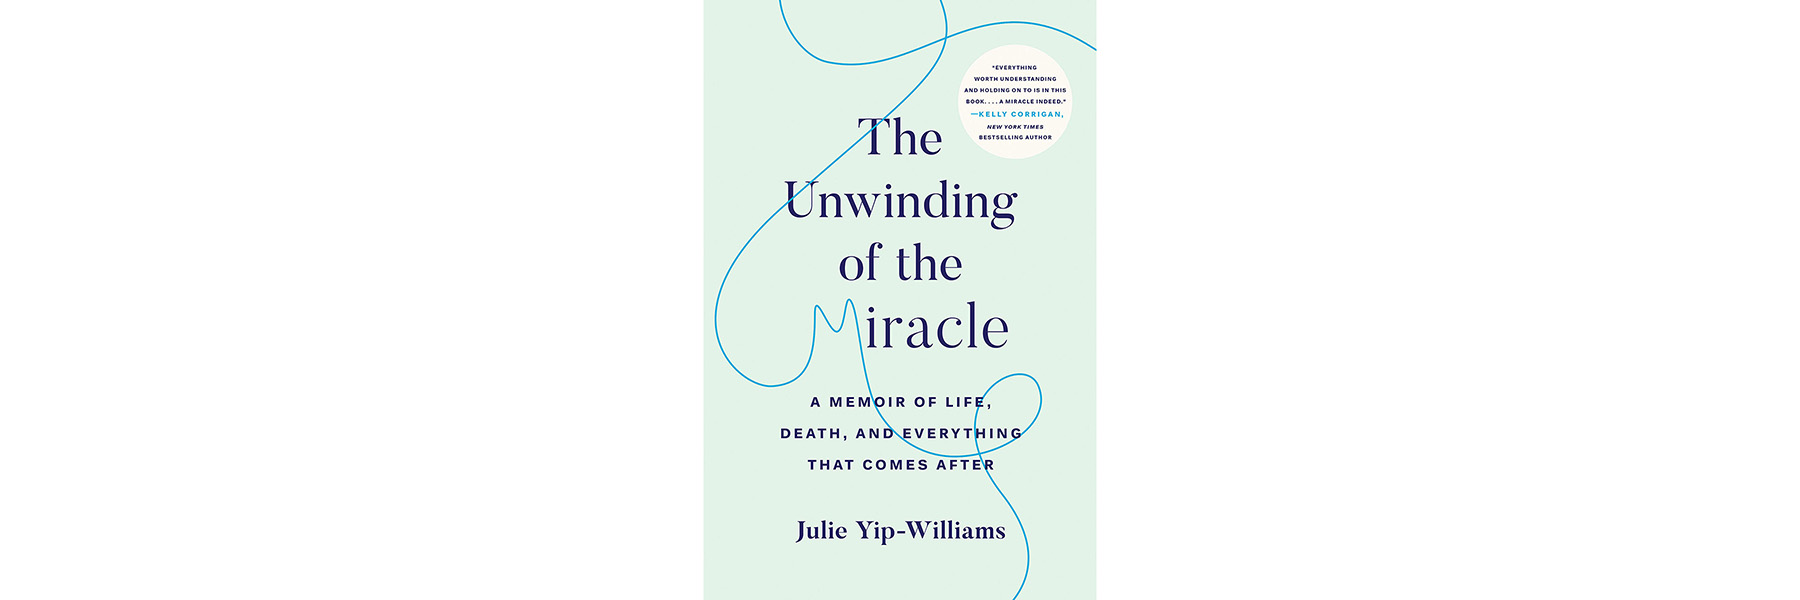 Cover of The Unwinding of the Miracle by Julie Yip-Williams